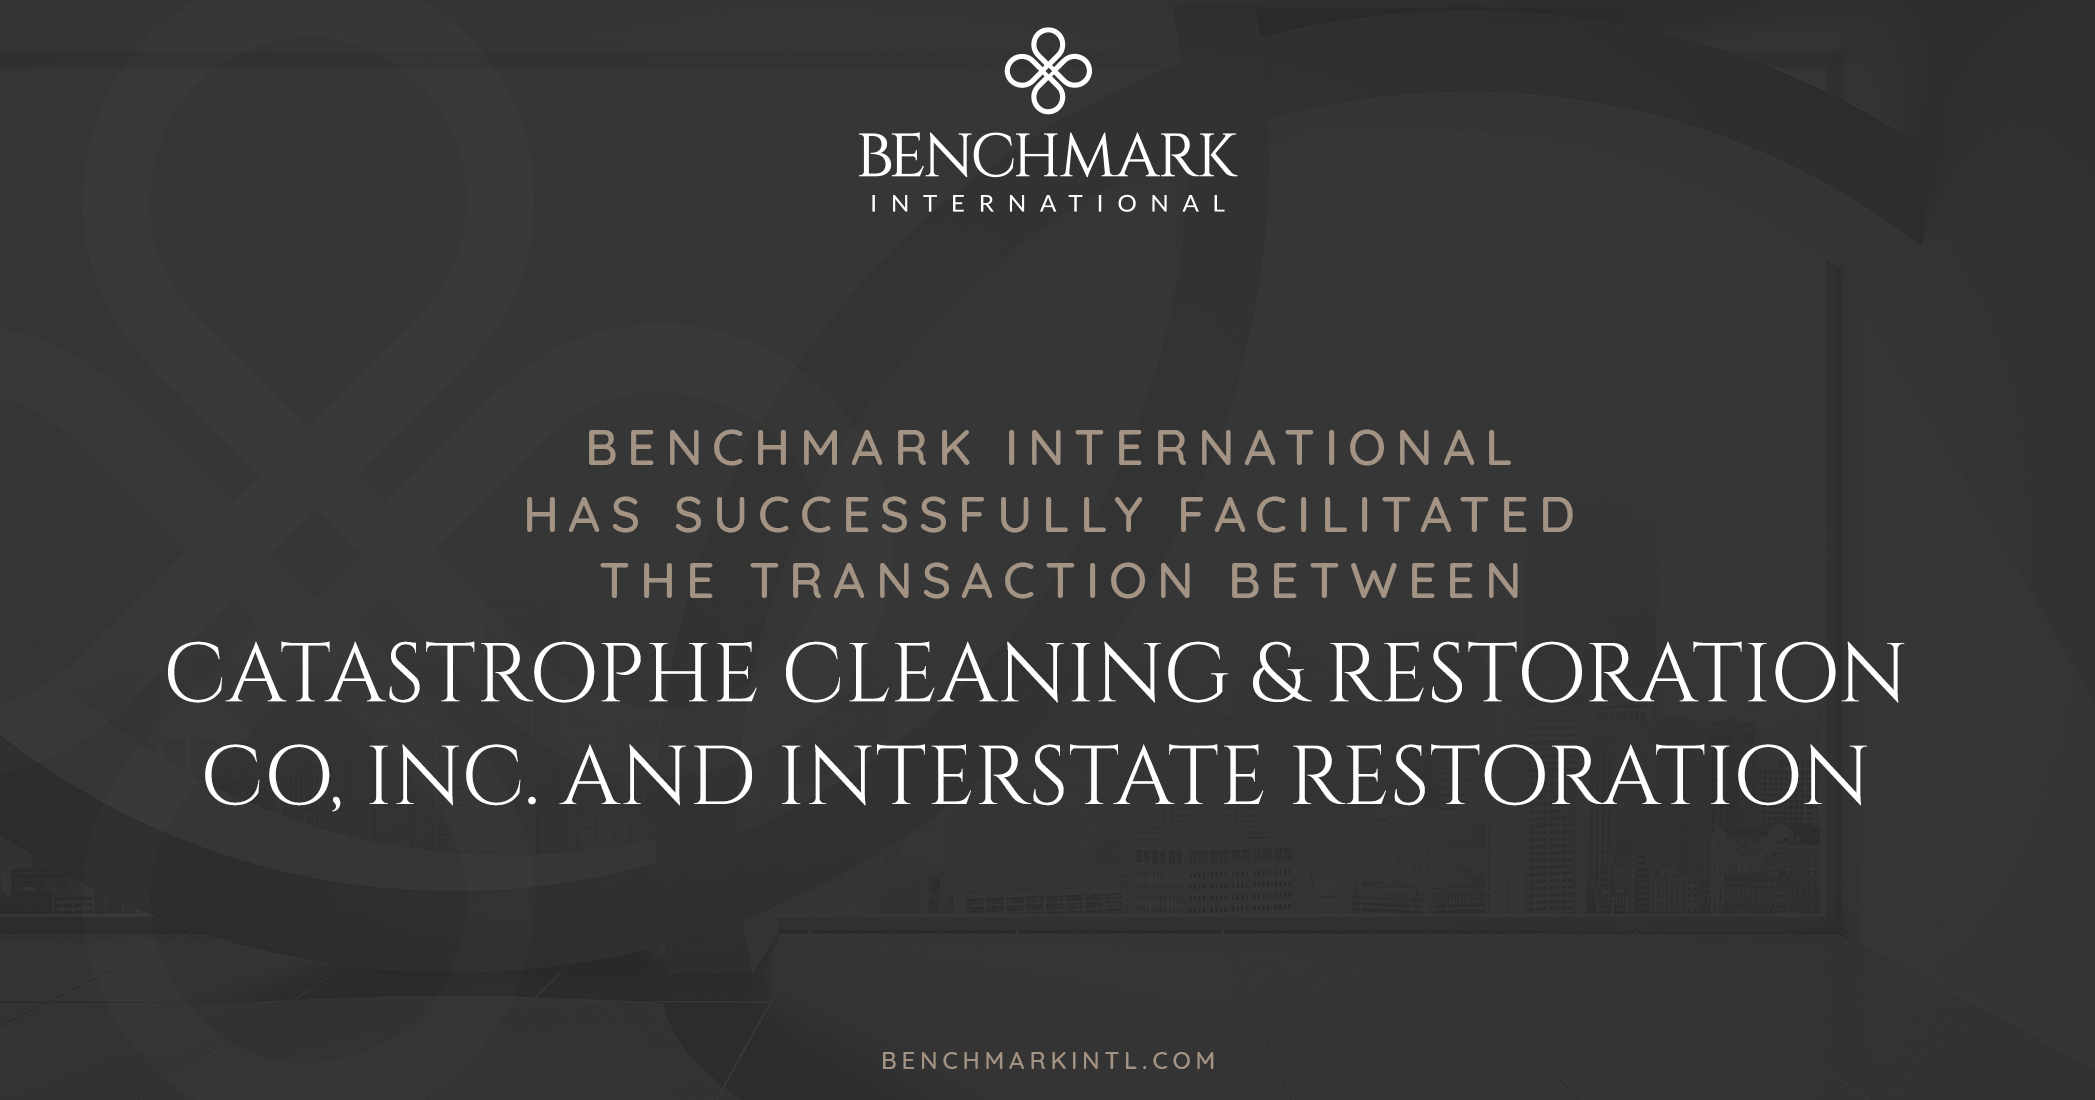 Benchmark International Facilitated the Transaction Between Catastrophe Cleaning & Restoration Co, Inc. and Interstate Restoration